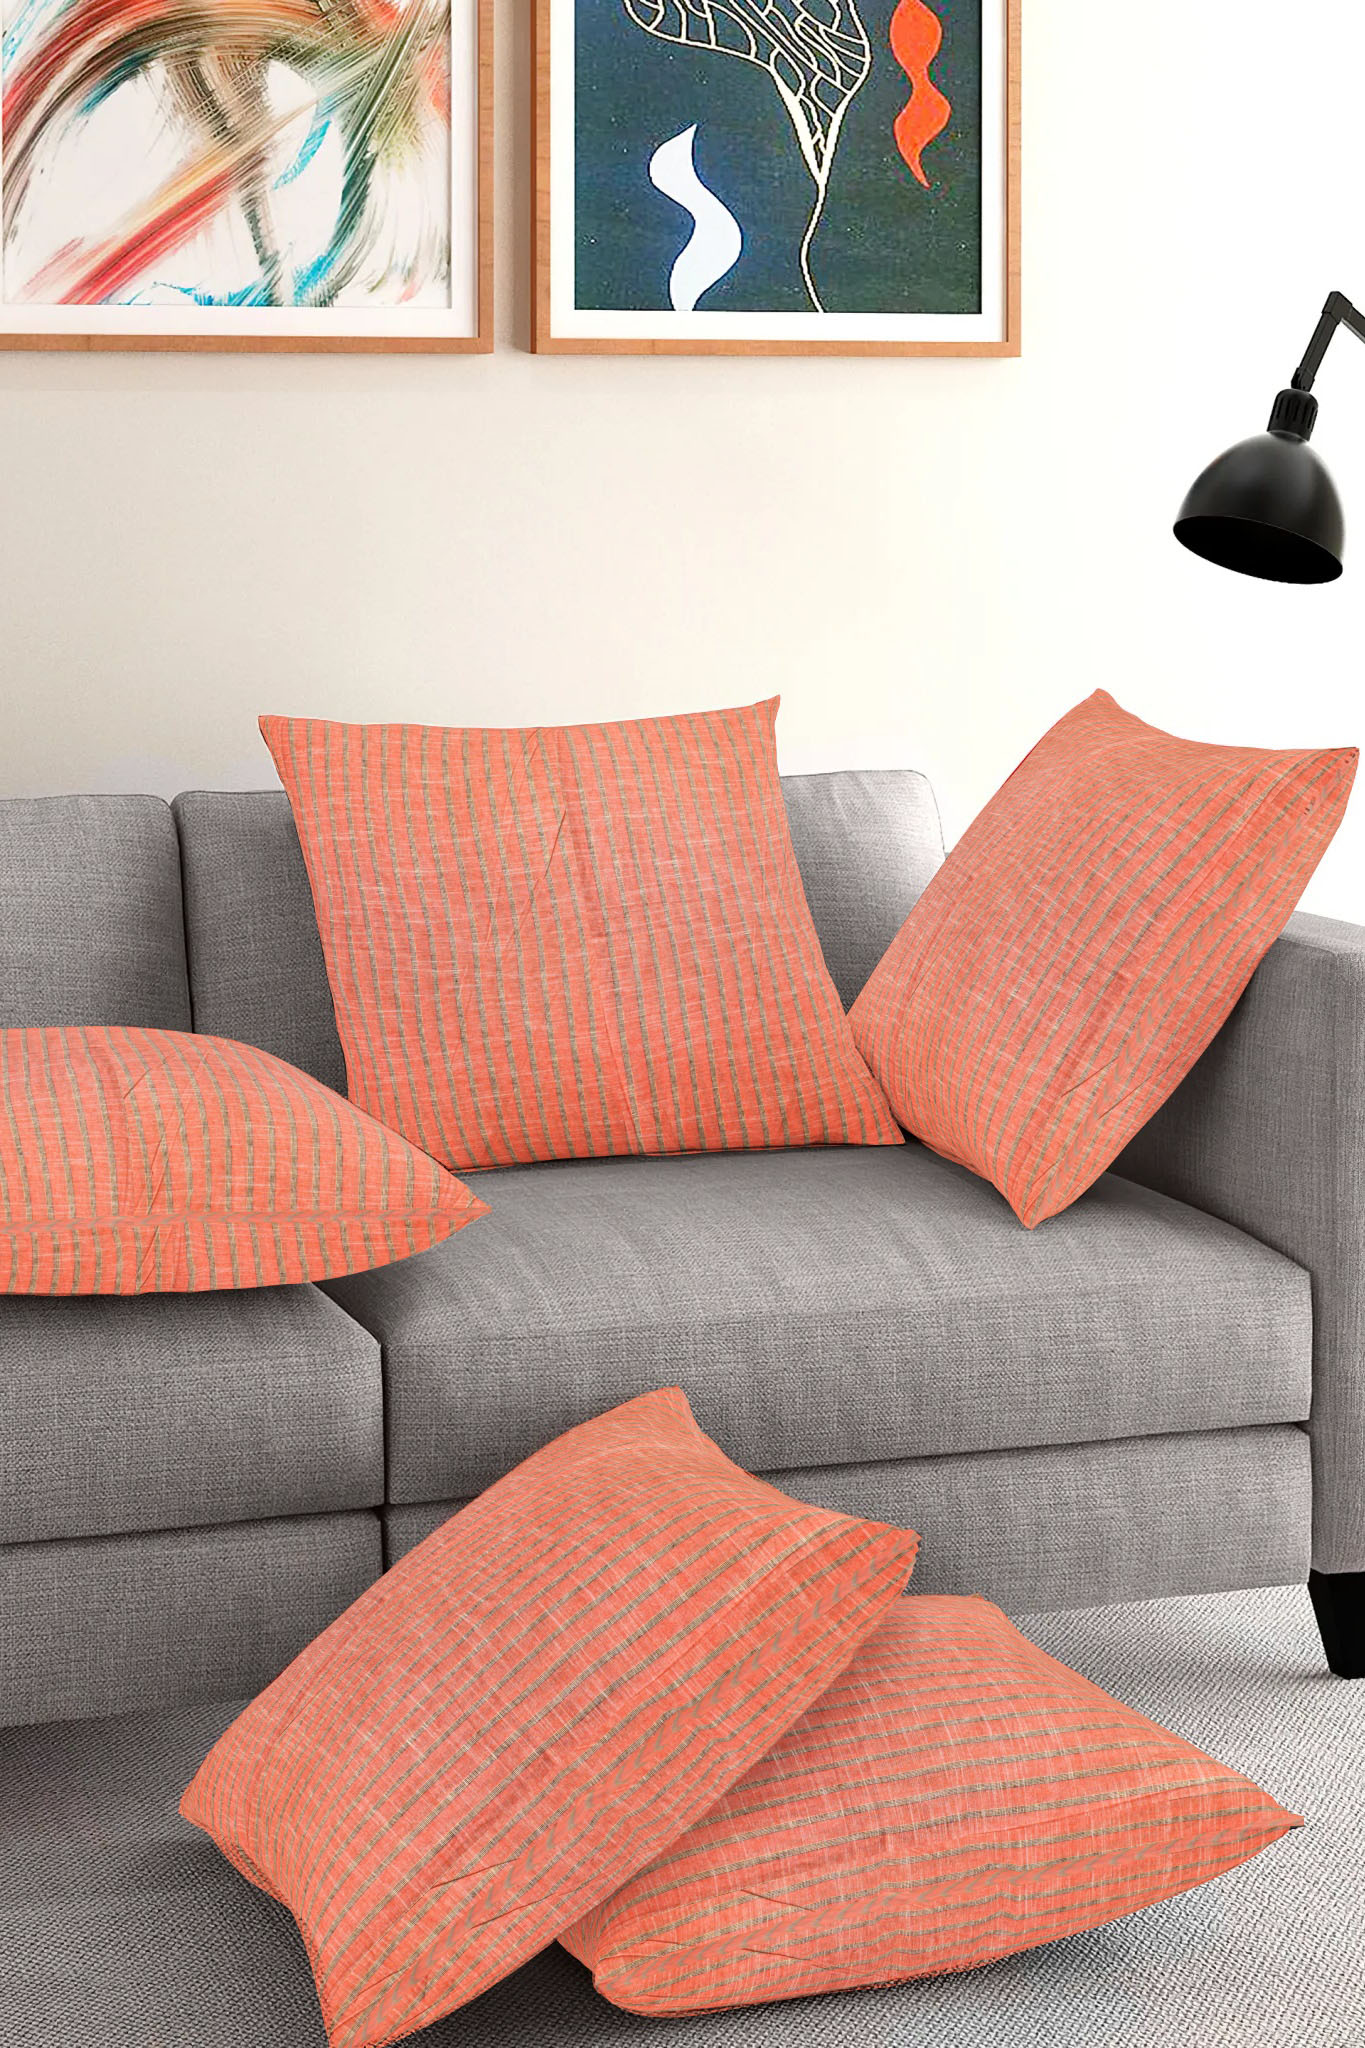 Set of 5-Peach Gray Cotton Cushion Cover-35416-16x16 Inches